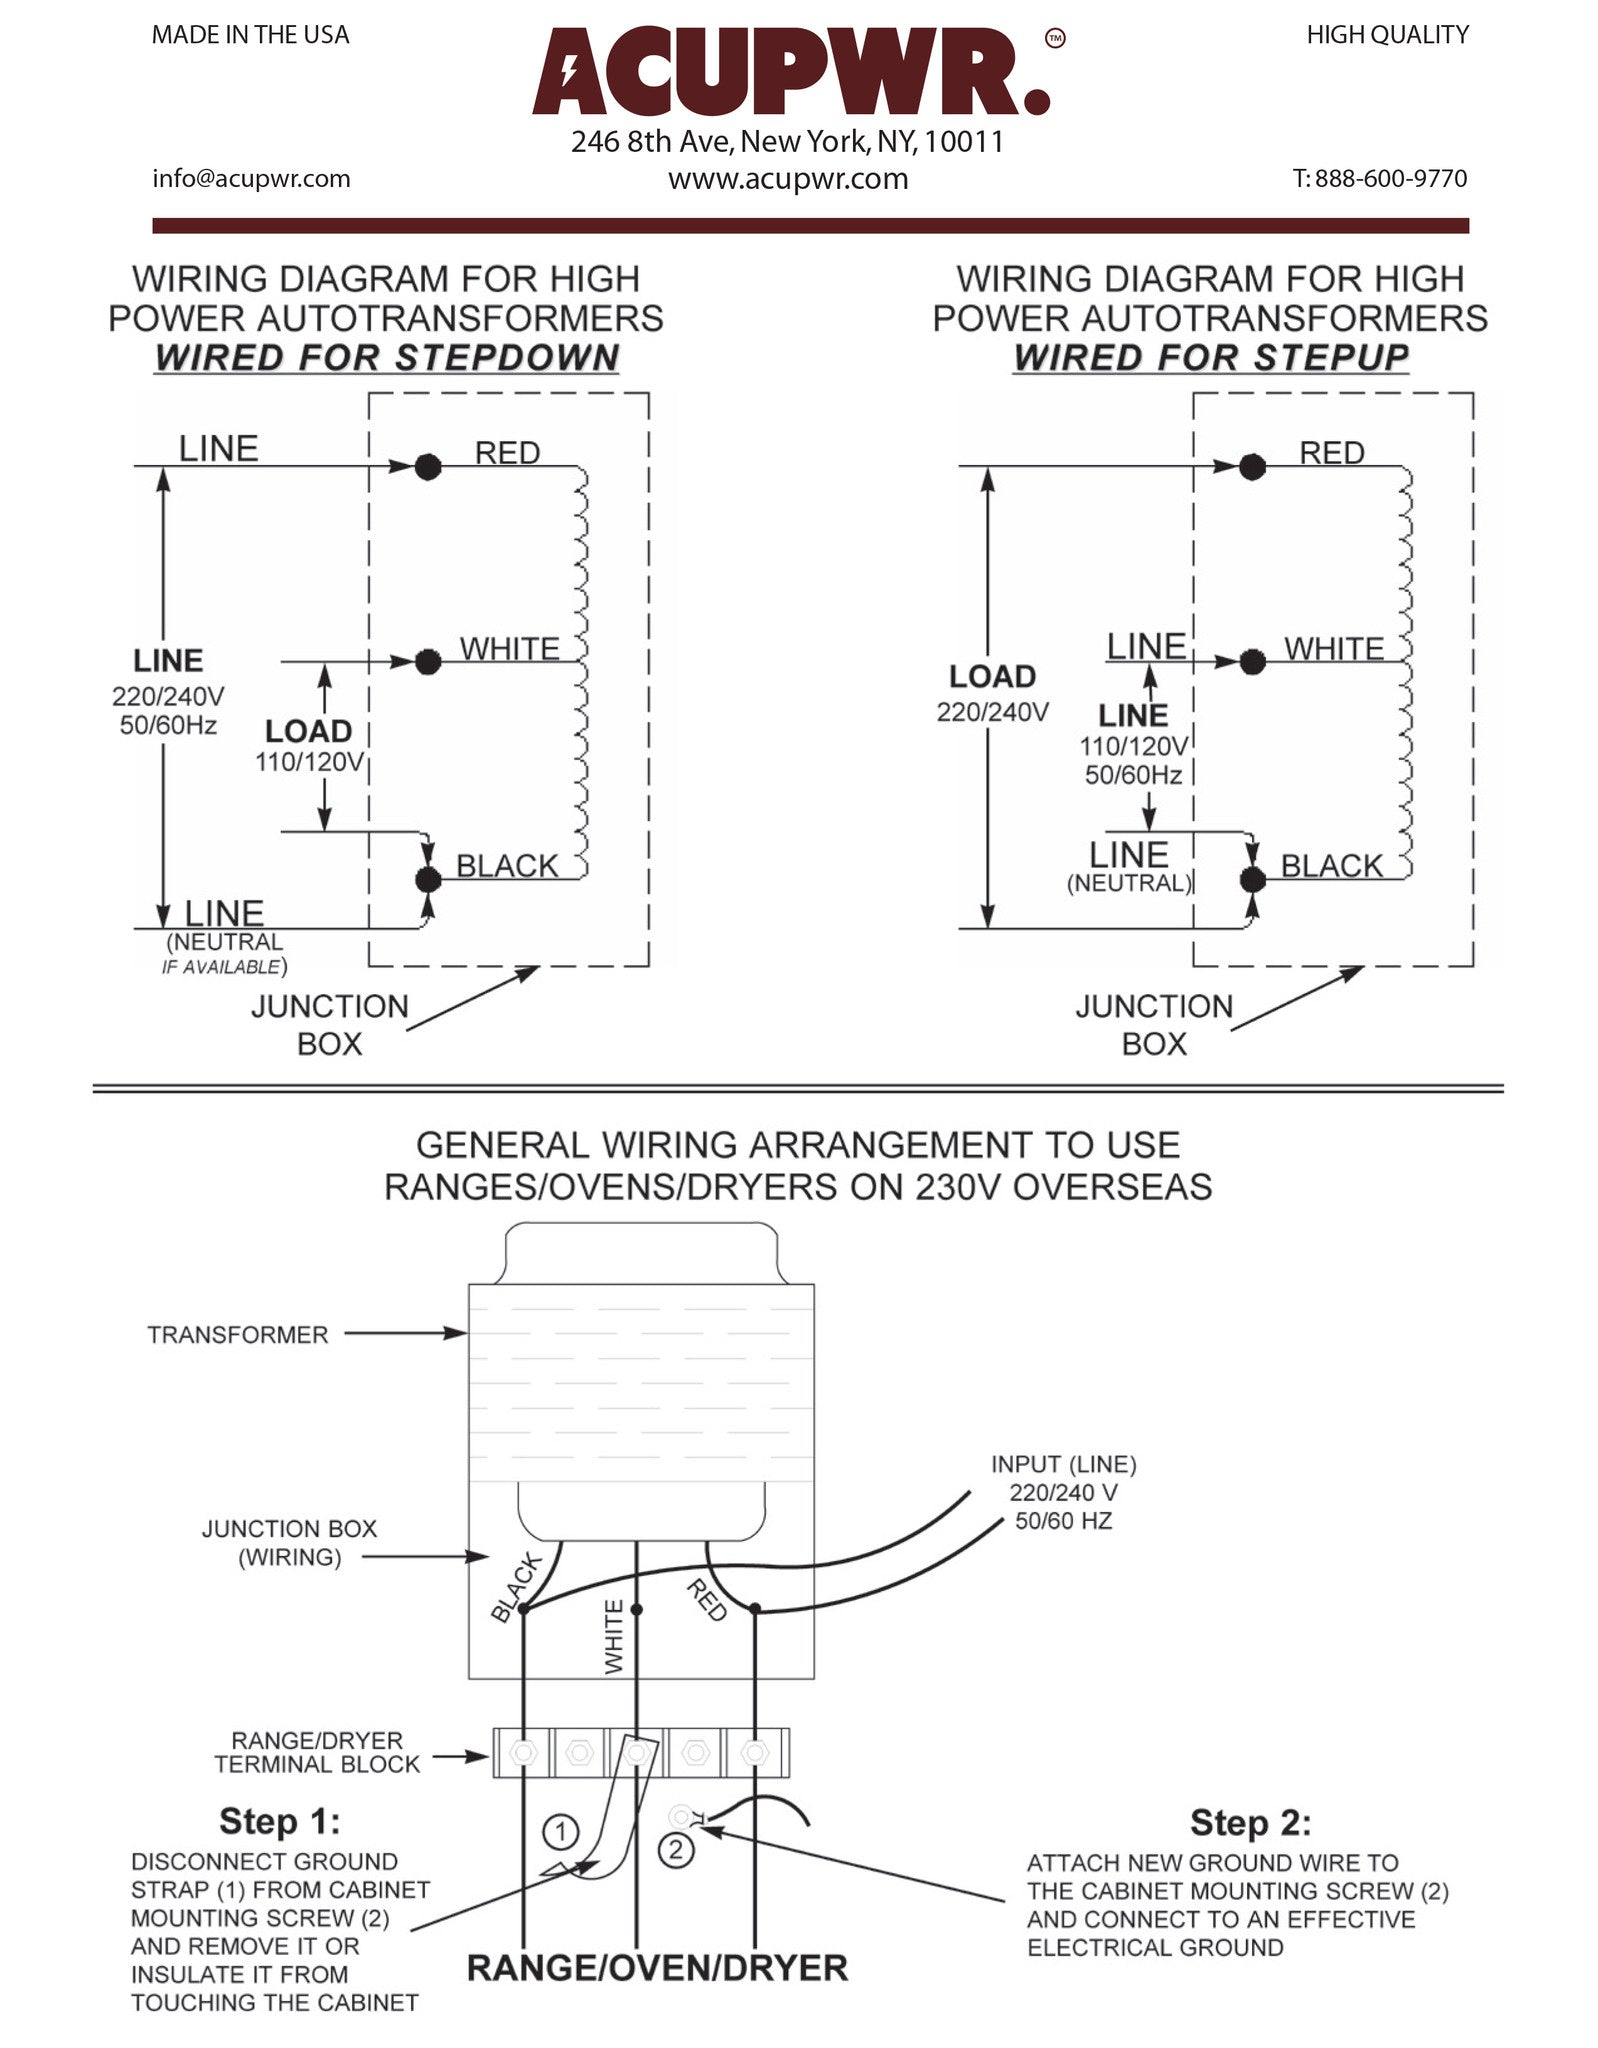 Aduh_Diagram_38ee0227 0107 4a34 96d3 1a7cb27ac531?v=1478031456 6000 tru watts™ step up step down hard wire voltage with knock electric motor wiring diagram 220 to 110 at crackthecode.co